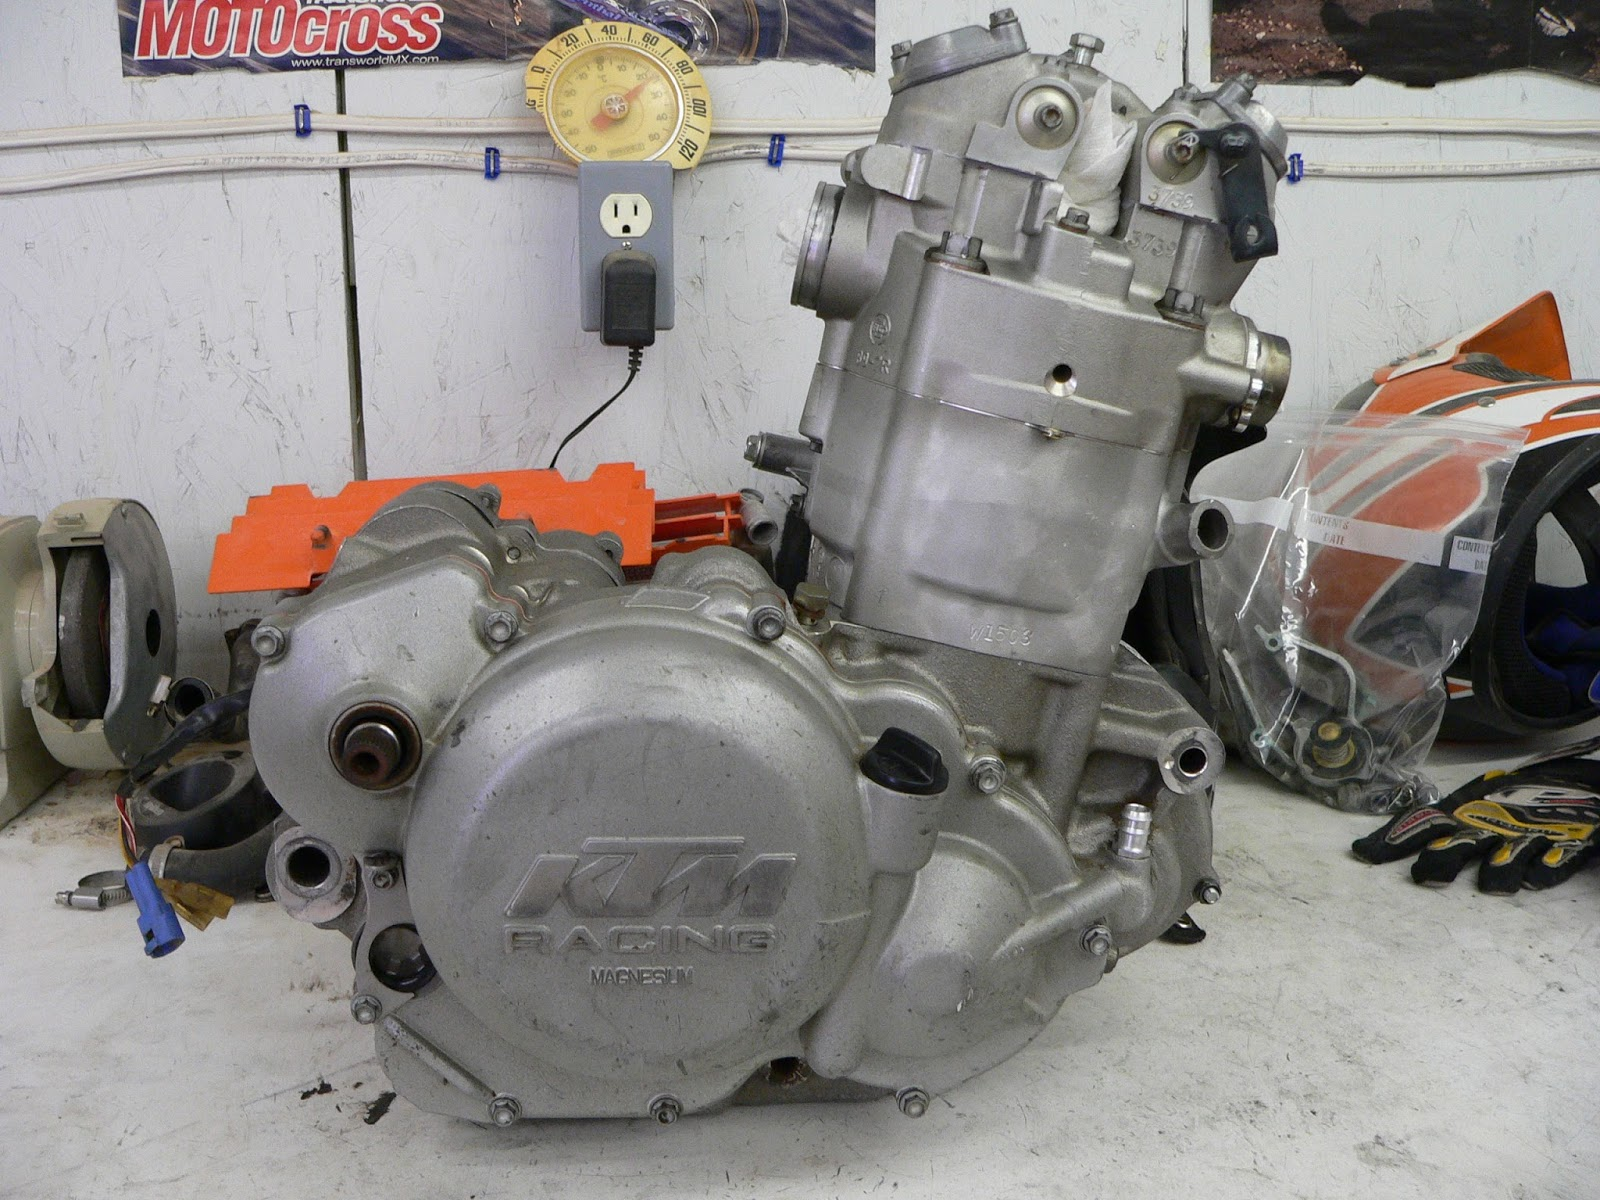 The Turtle and the Chicken Go Riding...: KTM 400 2002 - Yep the one with  the RFS Engine.